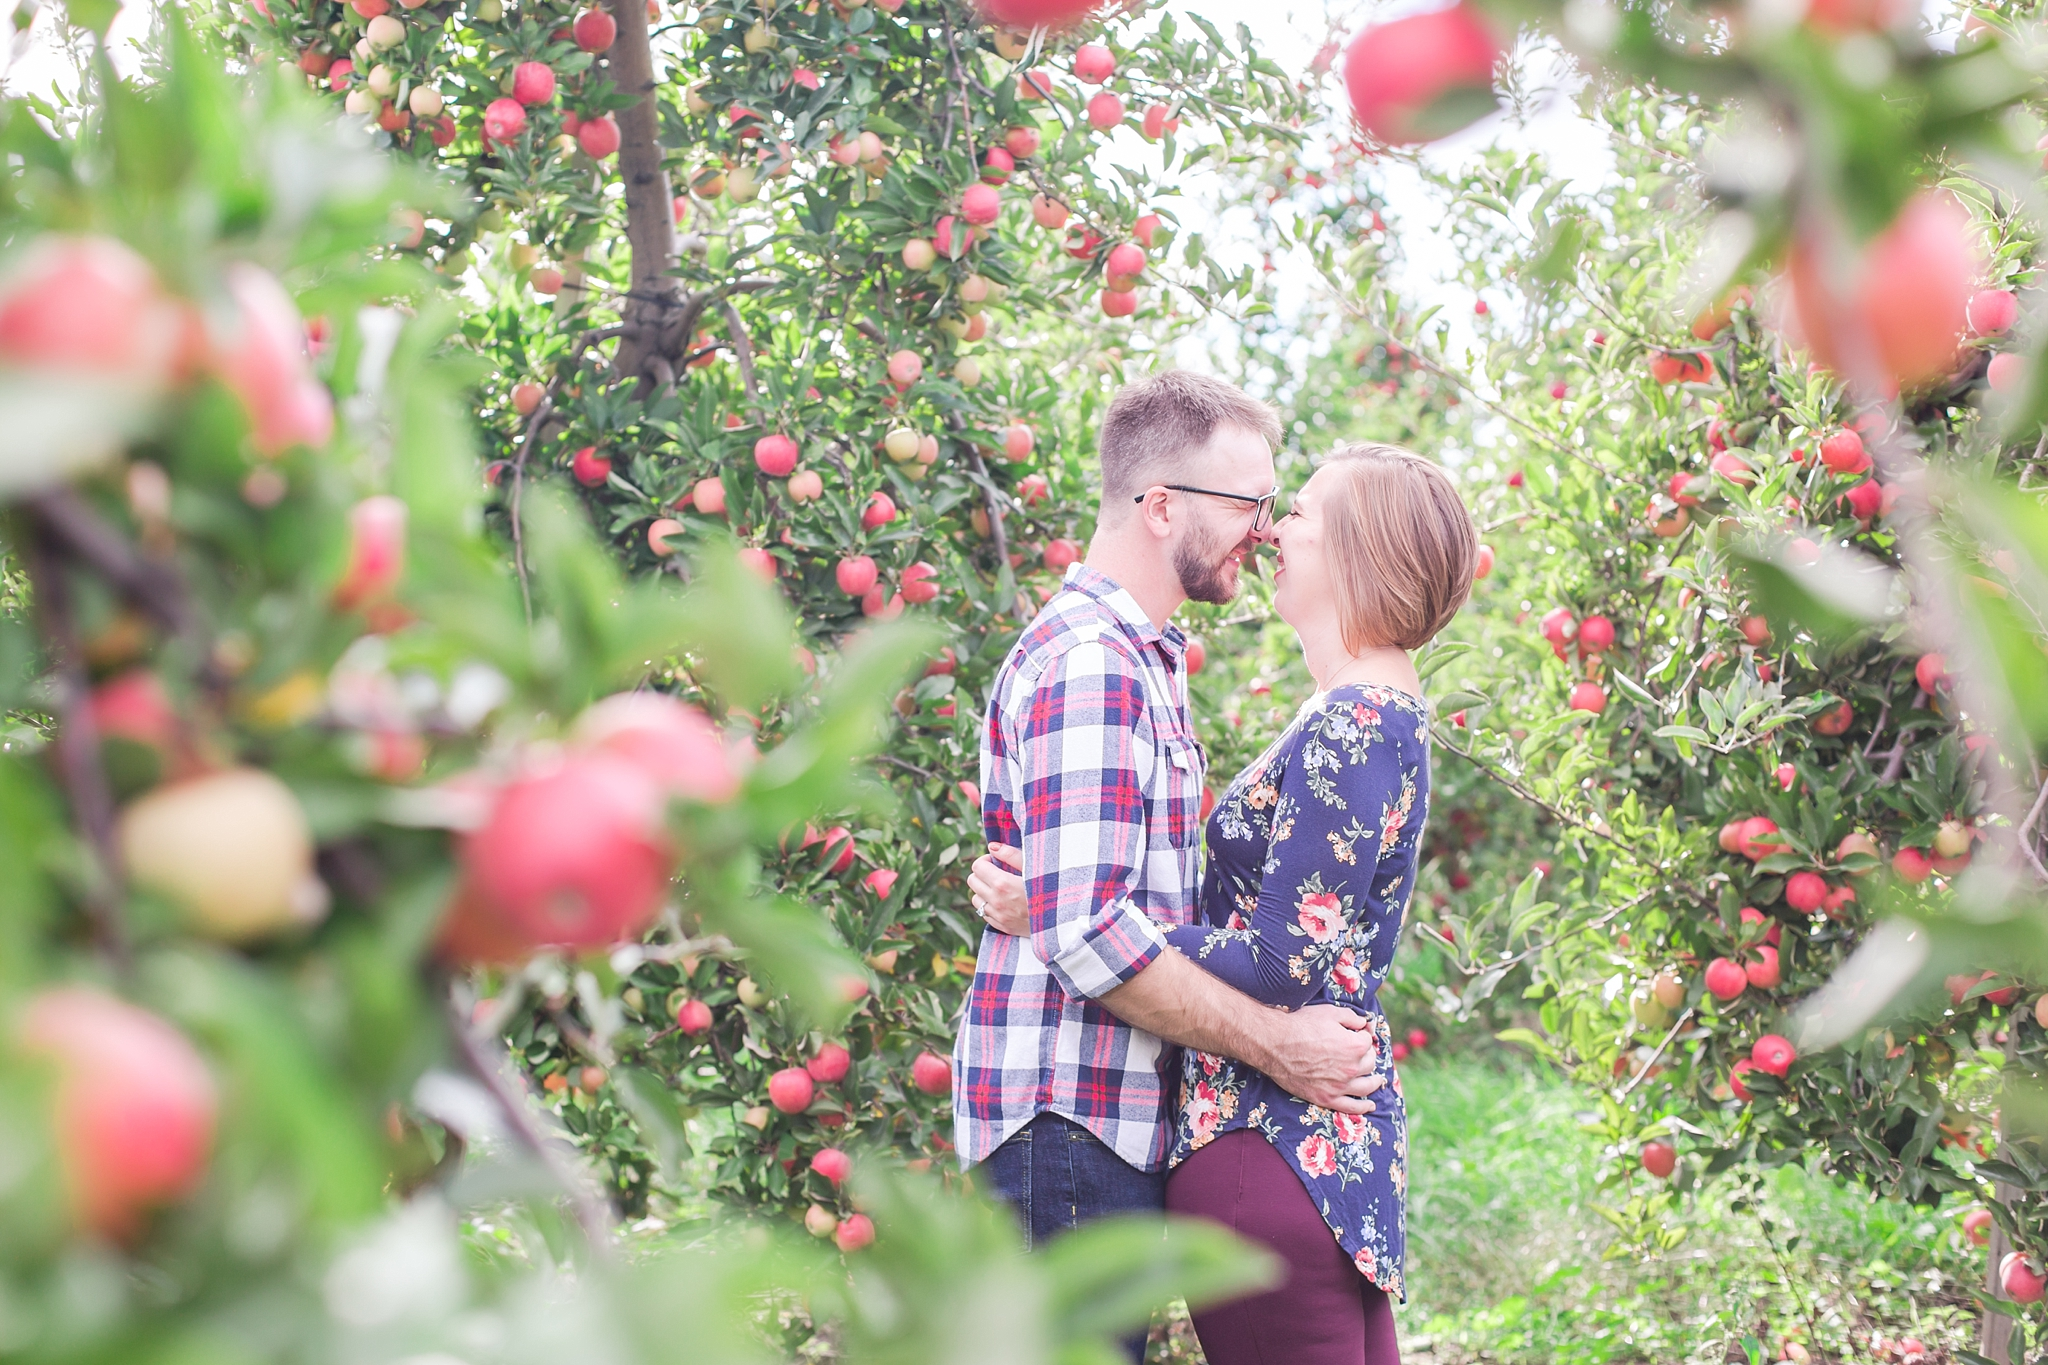 playful-fall-engagement-photos-at-hy's-cider-mill-ochard-in-bruce-township-michigan-by-courtney-carolyn-photography_0018.jpg